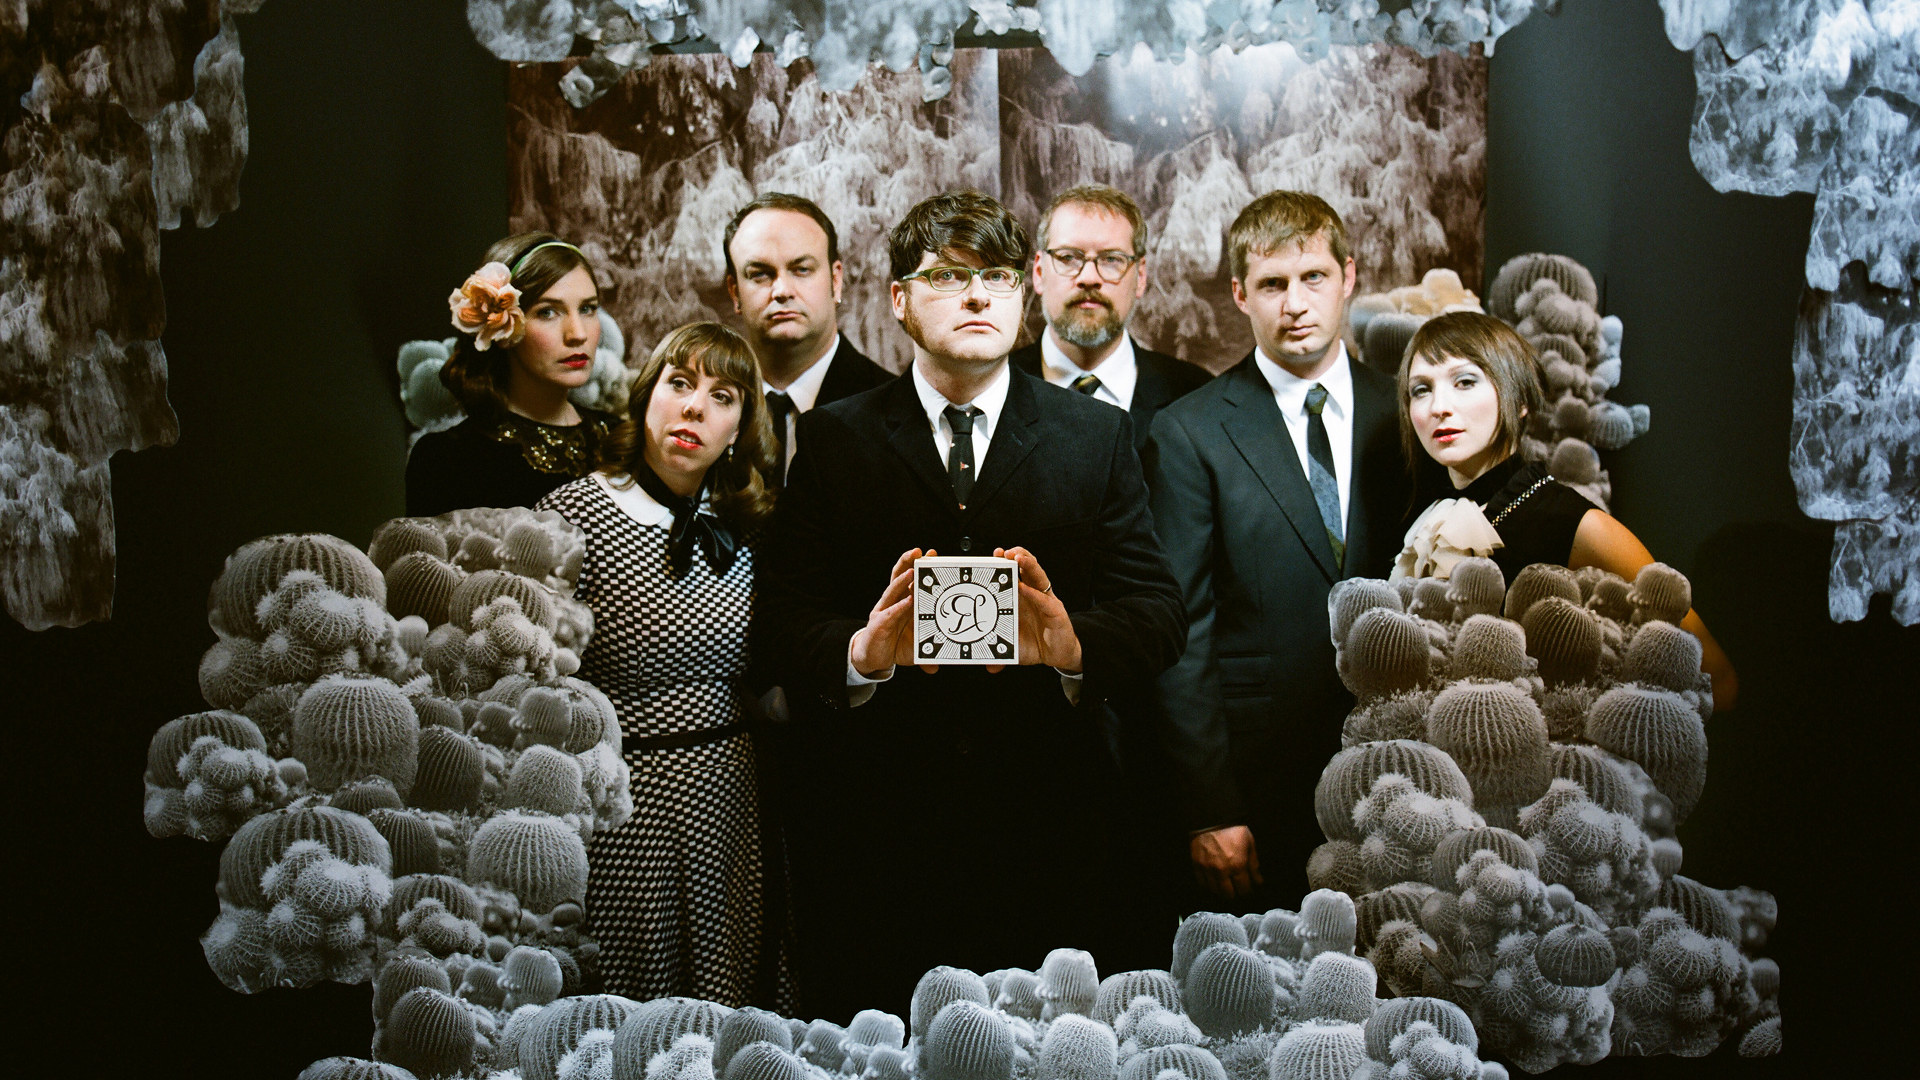 Nice wallpapers The Decemberists 1920x1080px